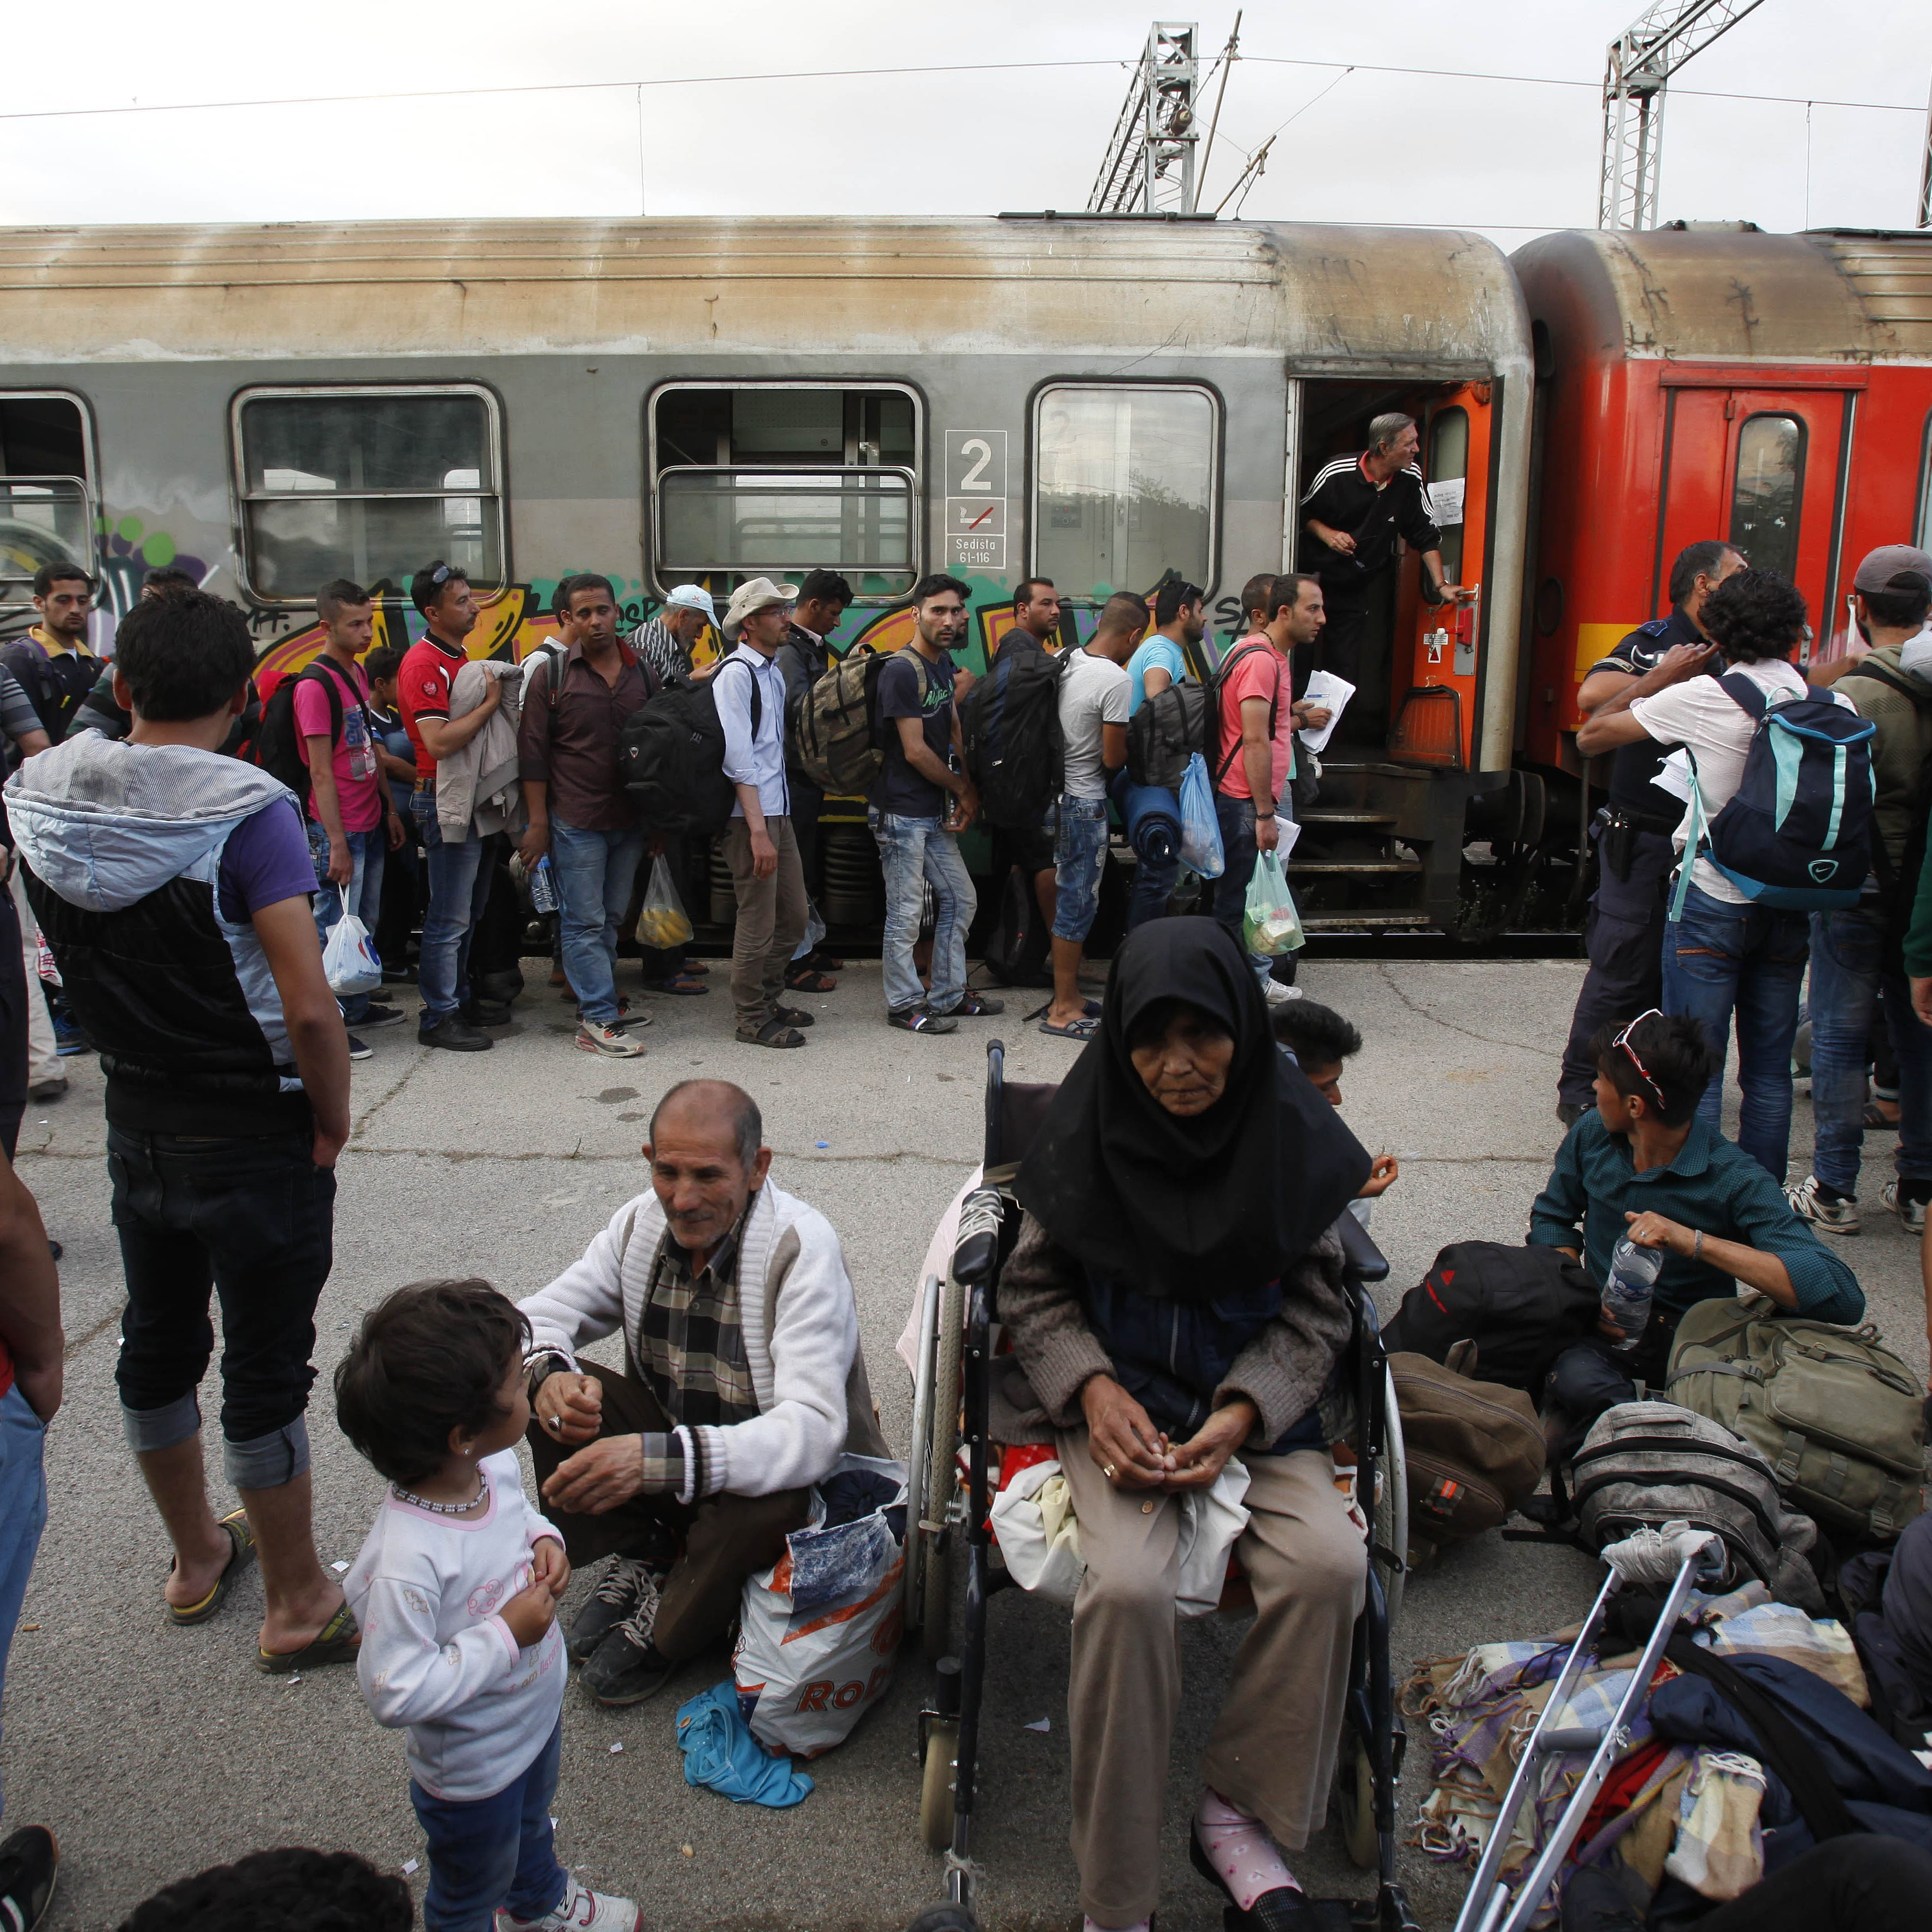 France suspends expulsions of migrants to Afghanistan